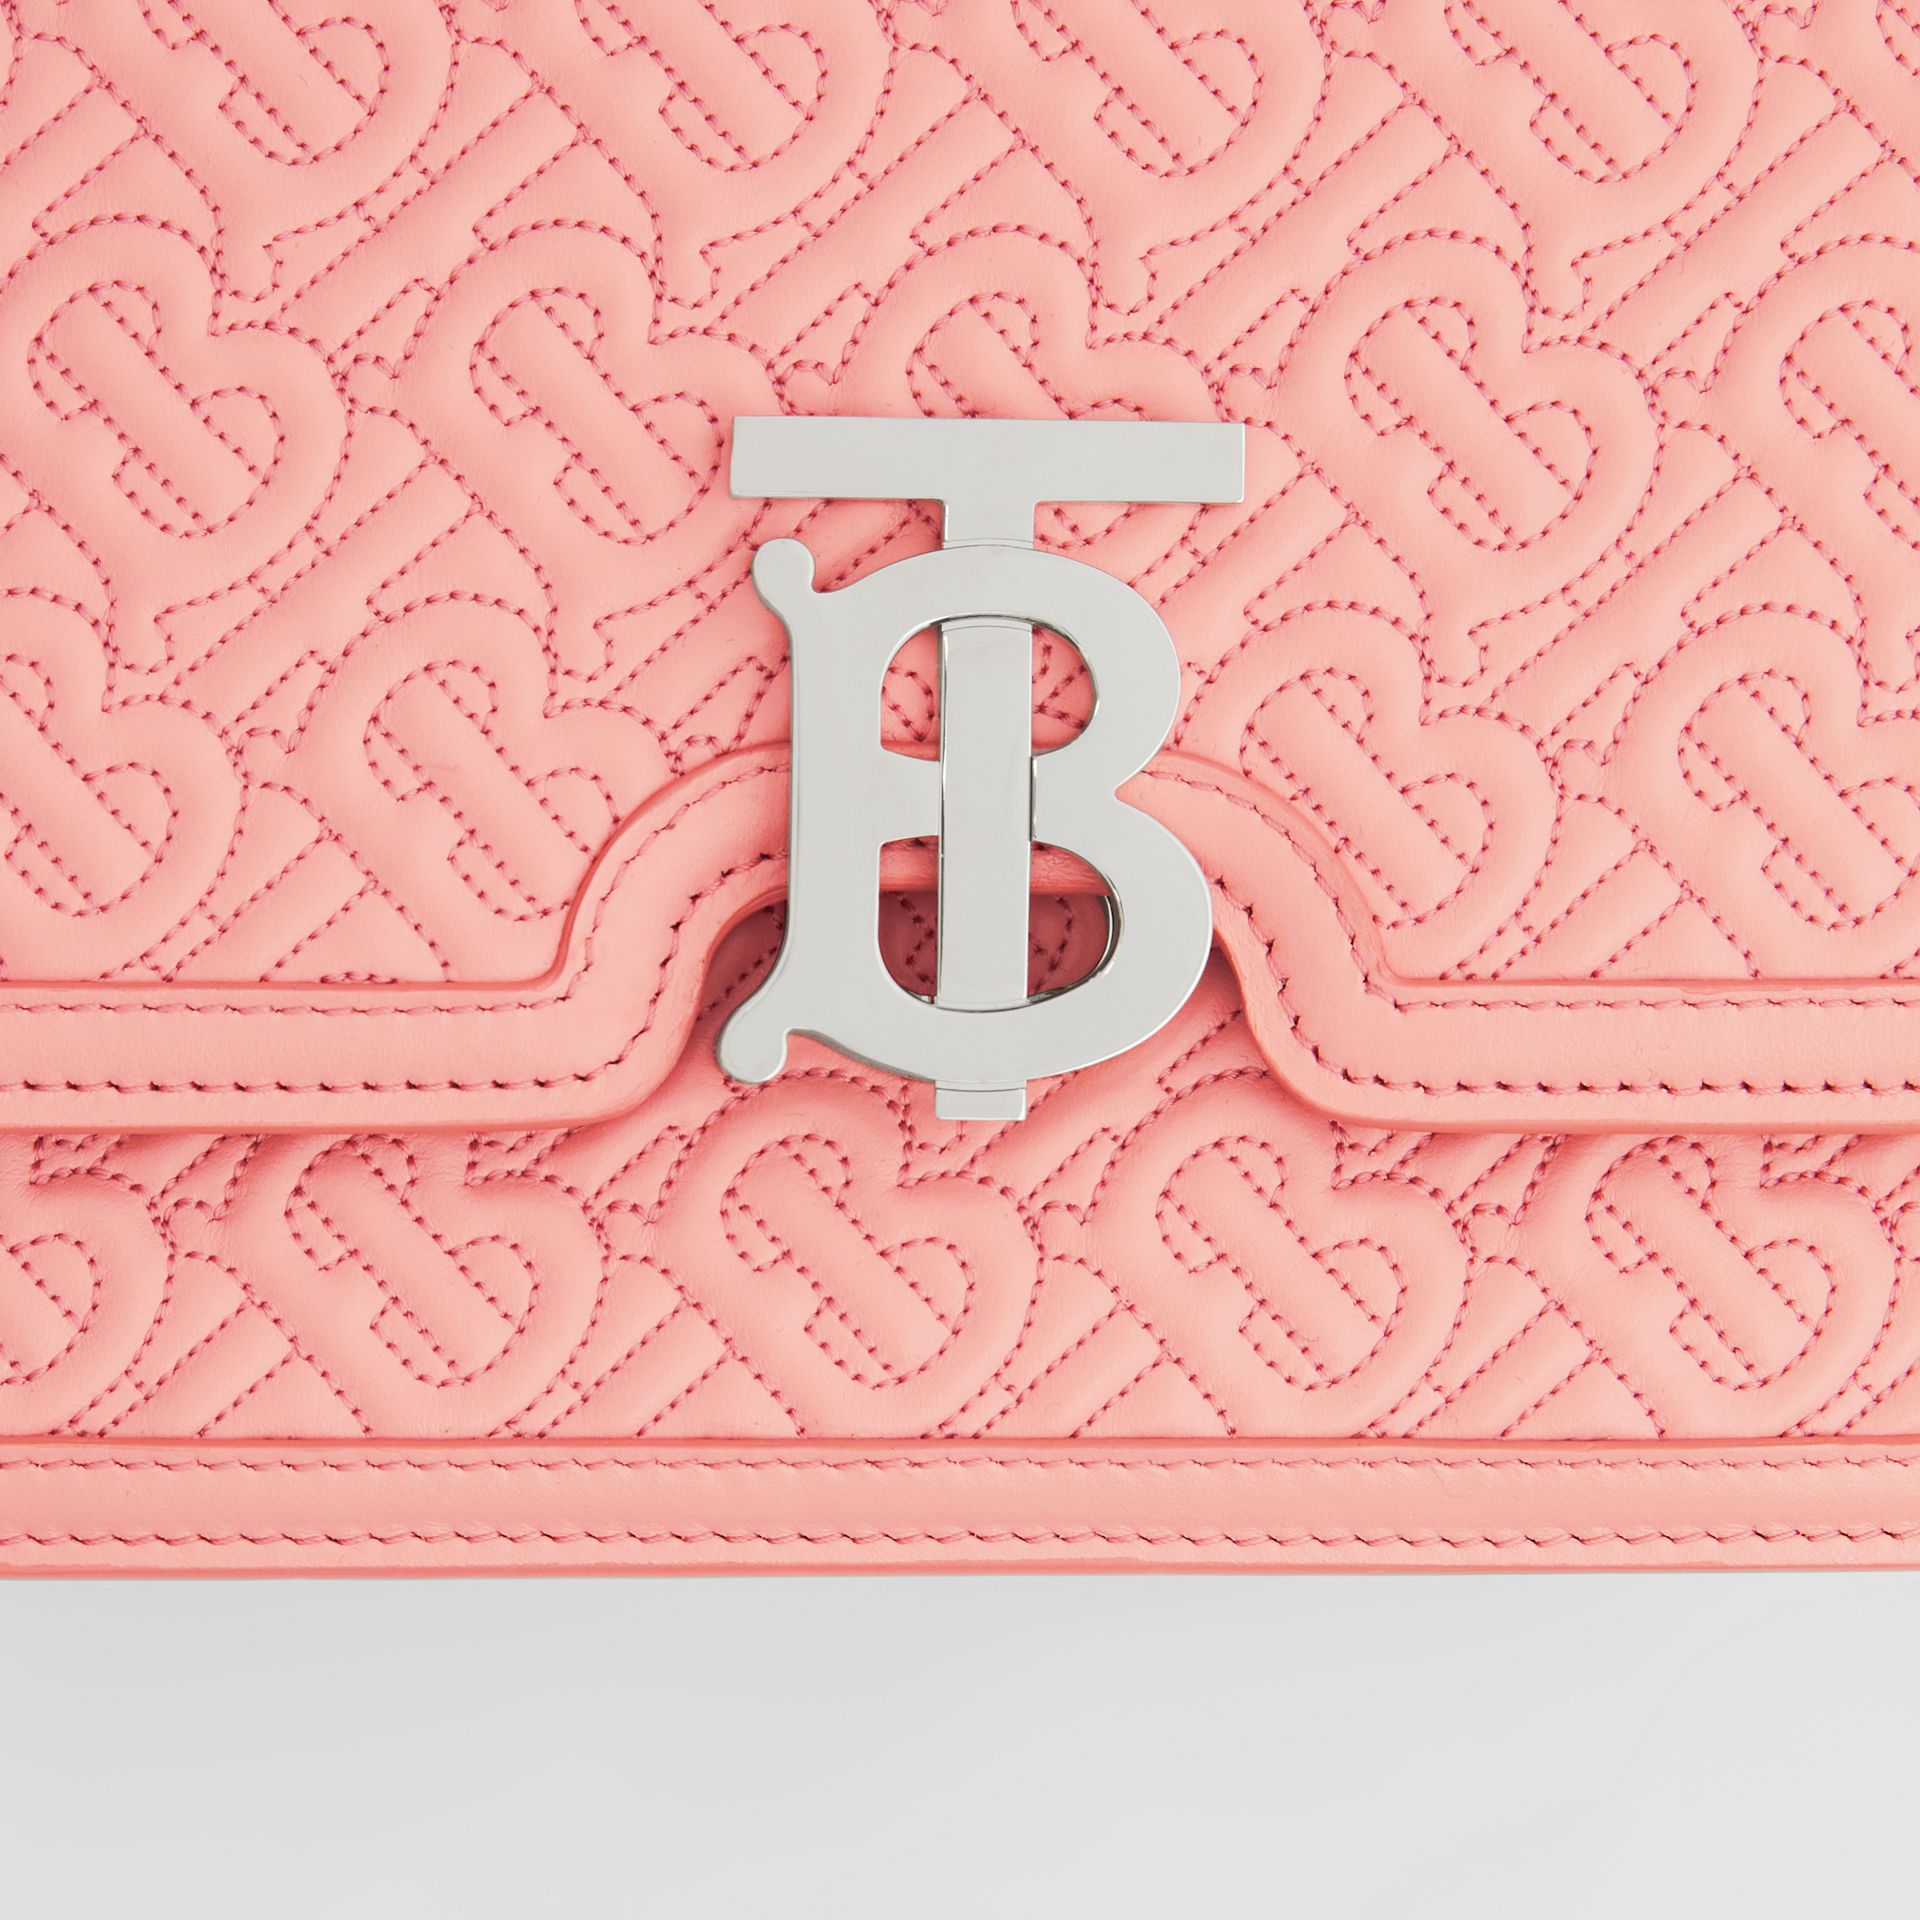 Small Quilted Monogram Lambskin TB Bag in Blush Pink - Women | Burberry - gallery image 1